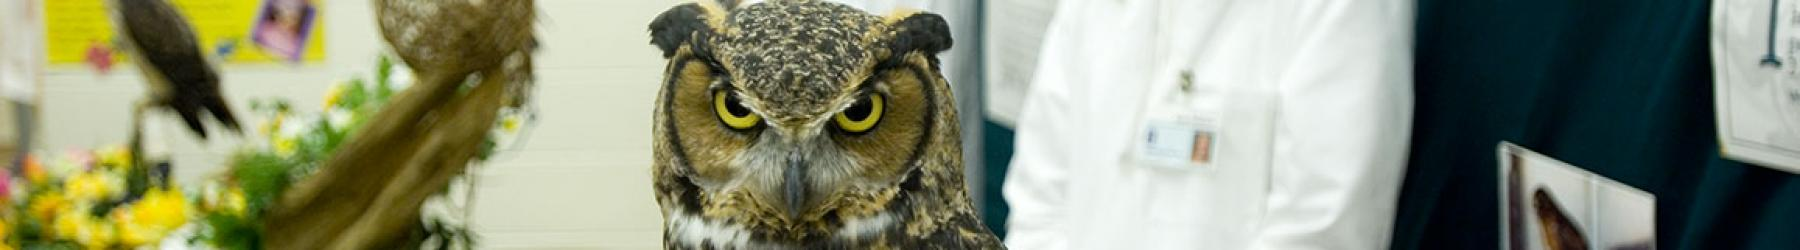 A healthy owl perches in the foreground with a vet in the background.